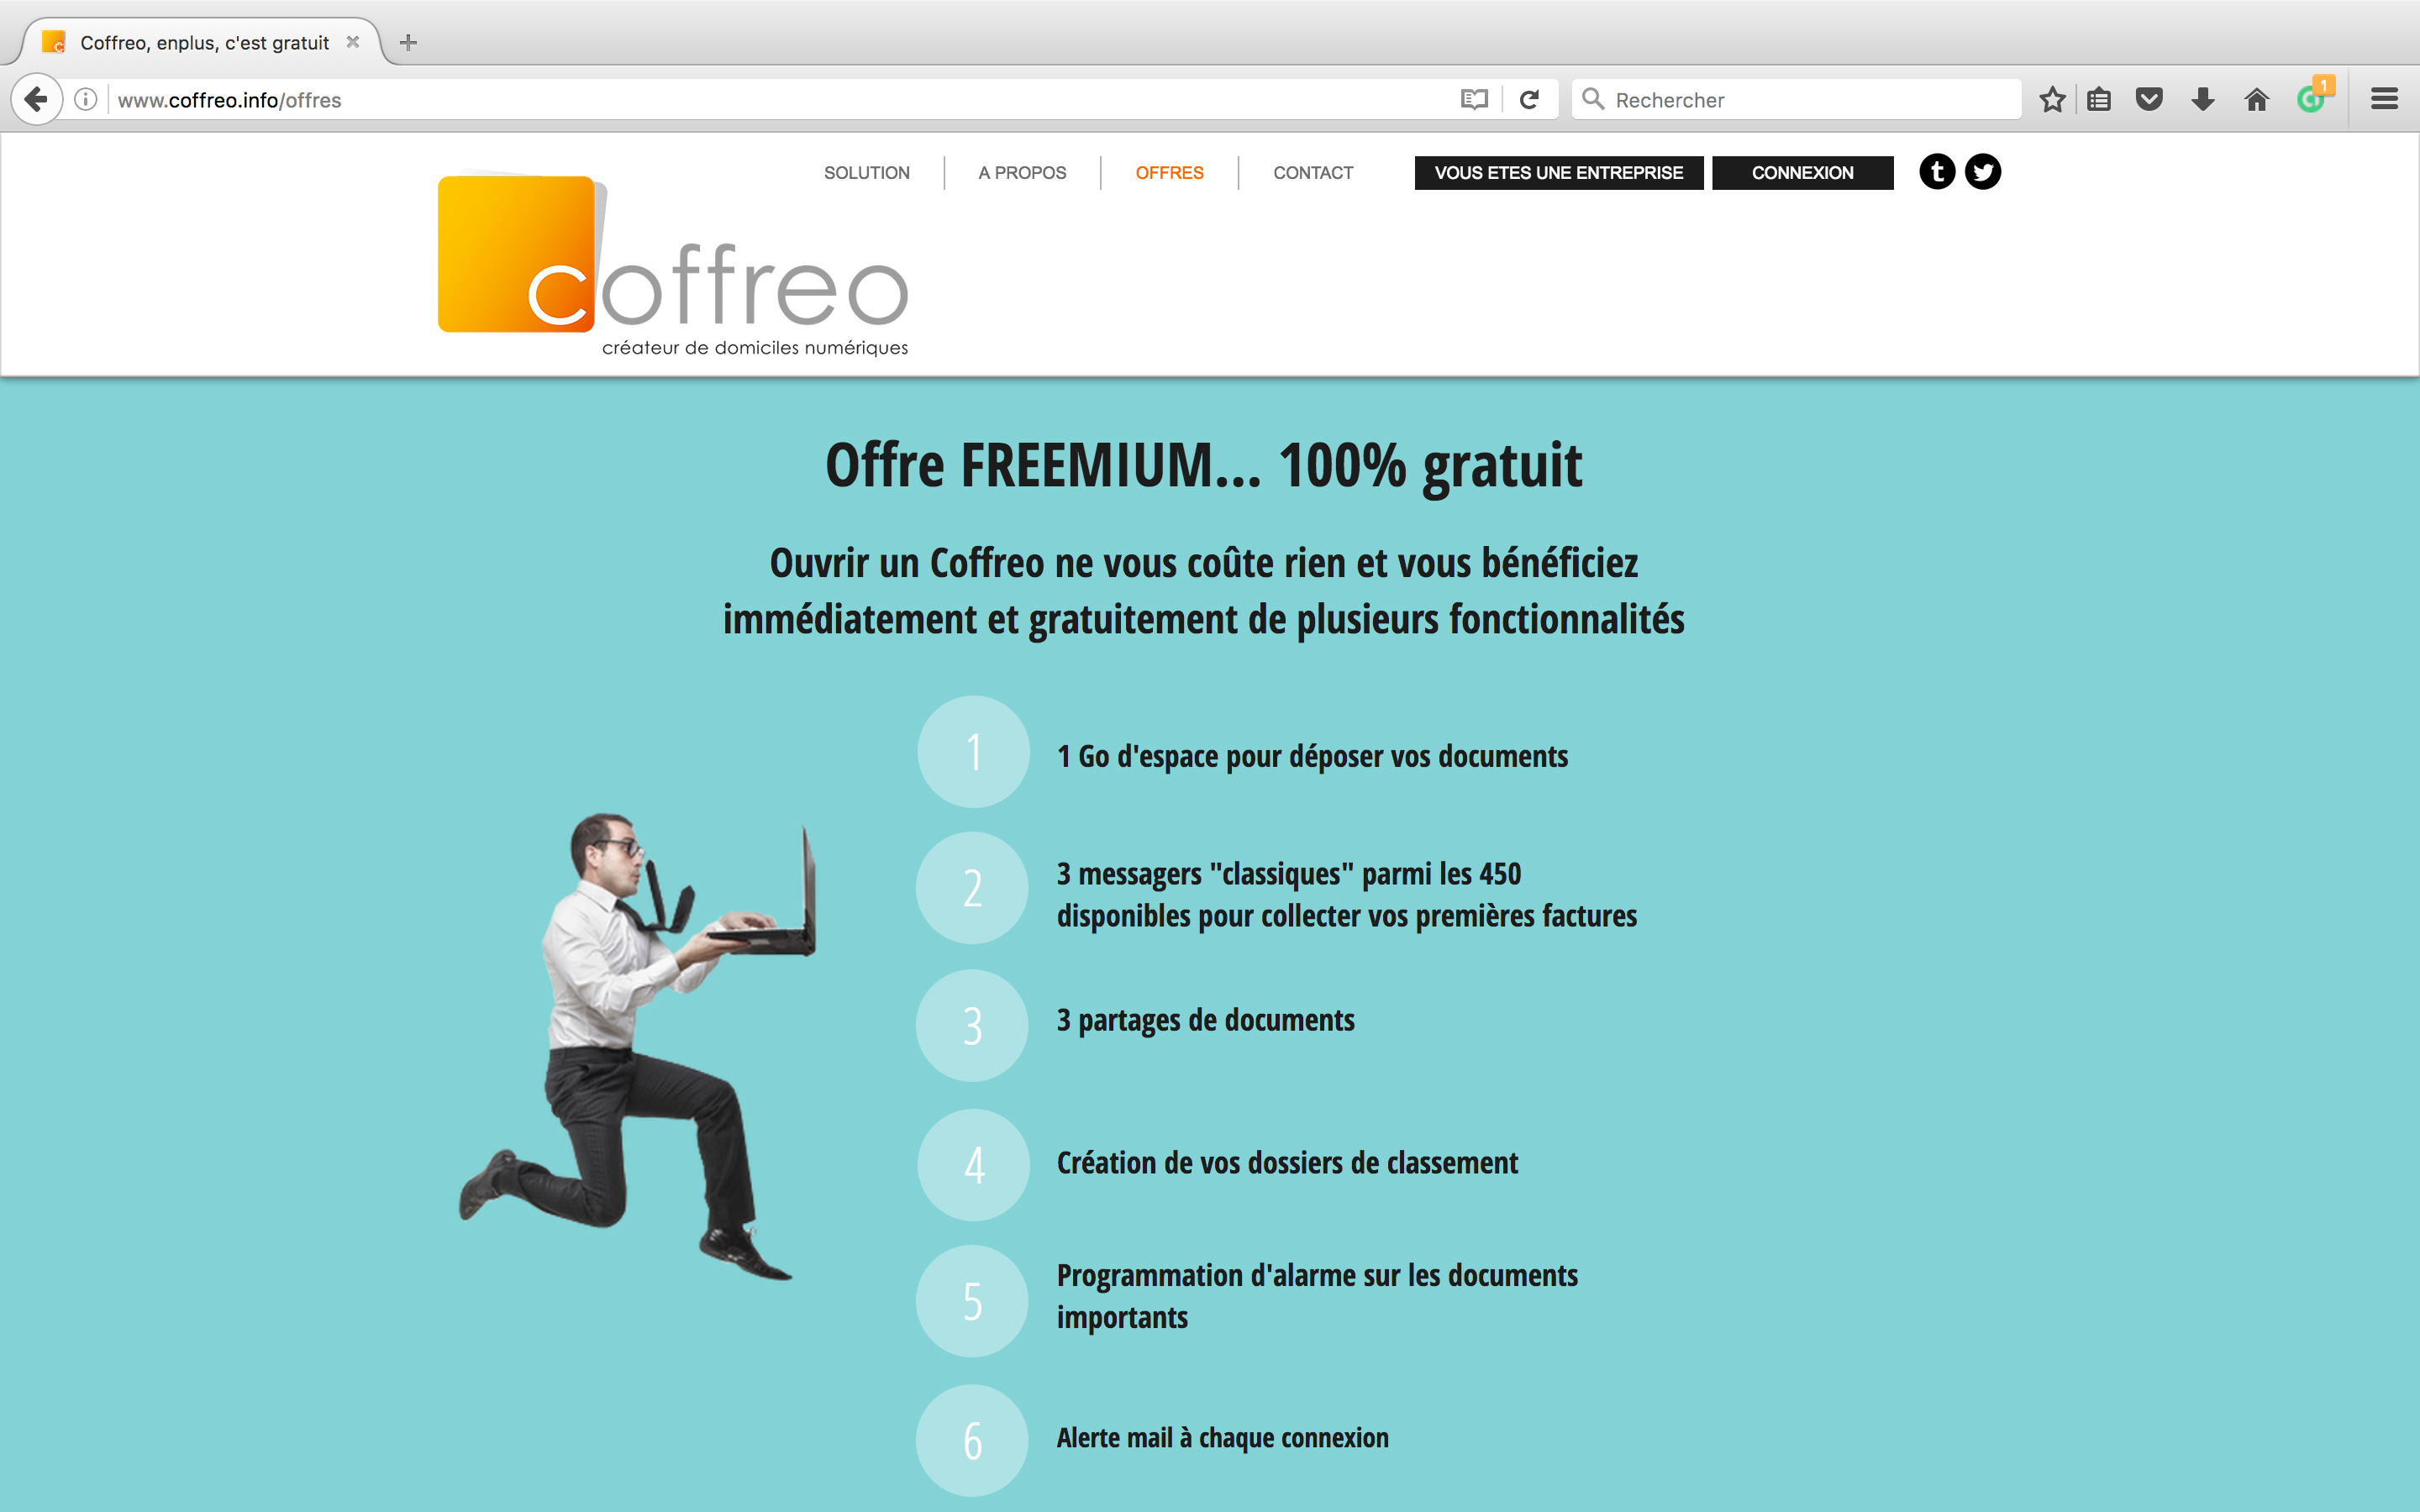 Site internet coffreo.info